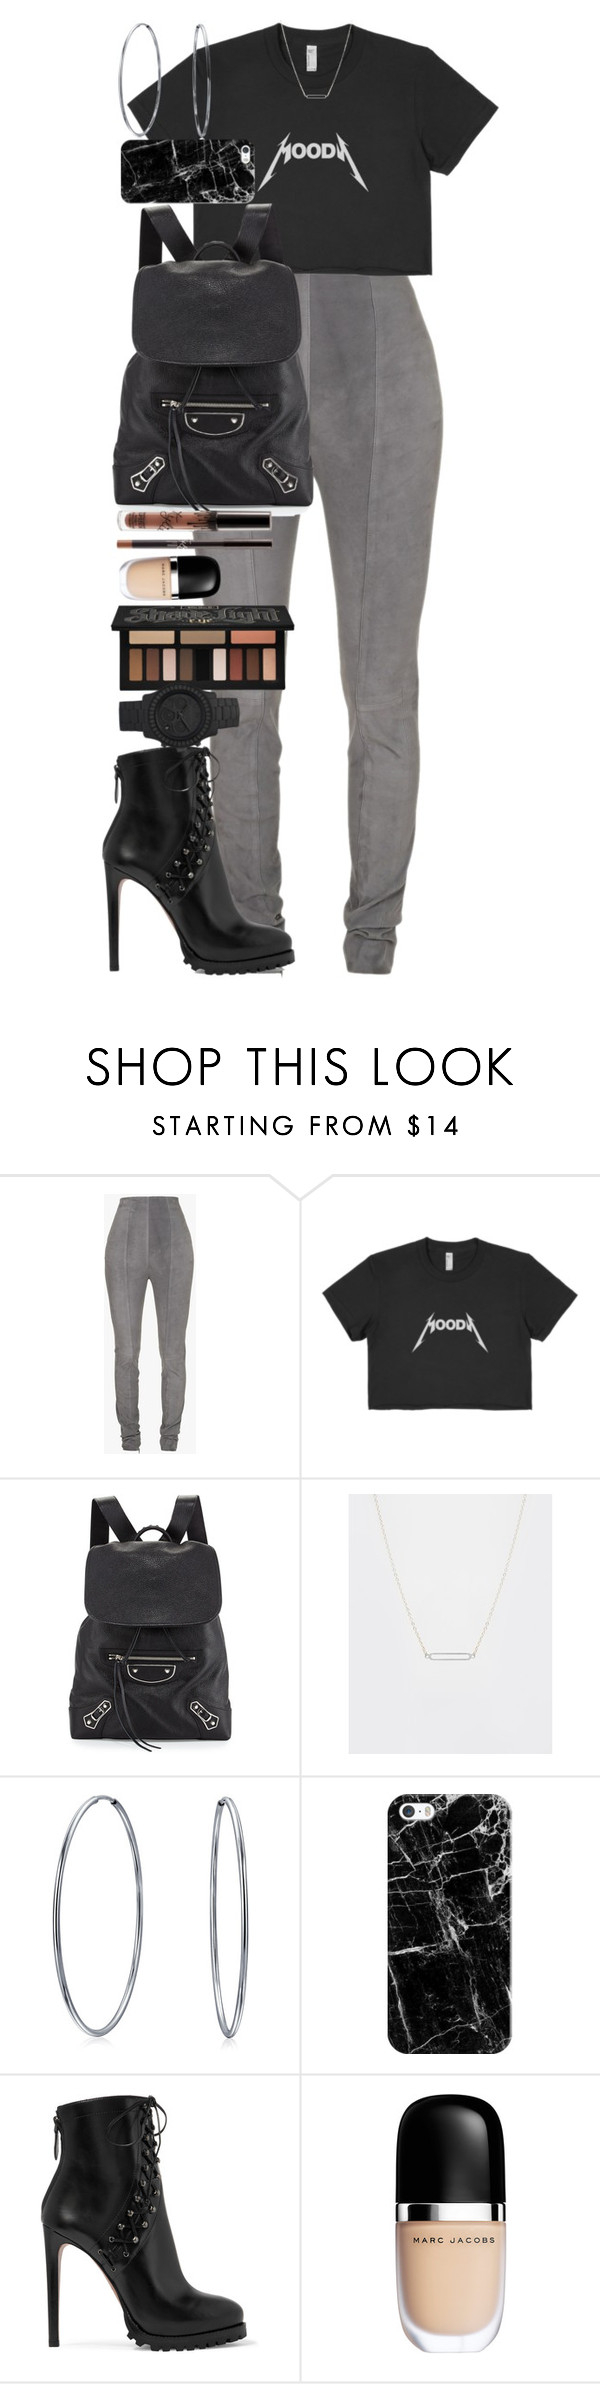 """""""We must accept finite disappointment, but never lose infinite hope."""" by quiche ❤ liked on Polyvore featuring Balmain, Balenciaga, ASOS, Bling Jewelry, Casetify, Alaïa, Marc Jacobs and Kat Von D"""